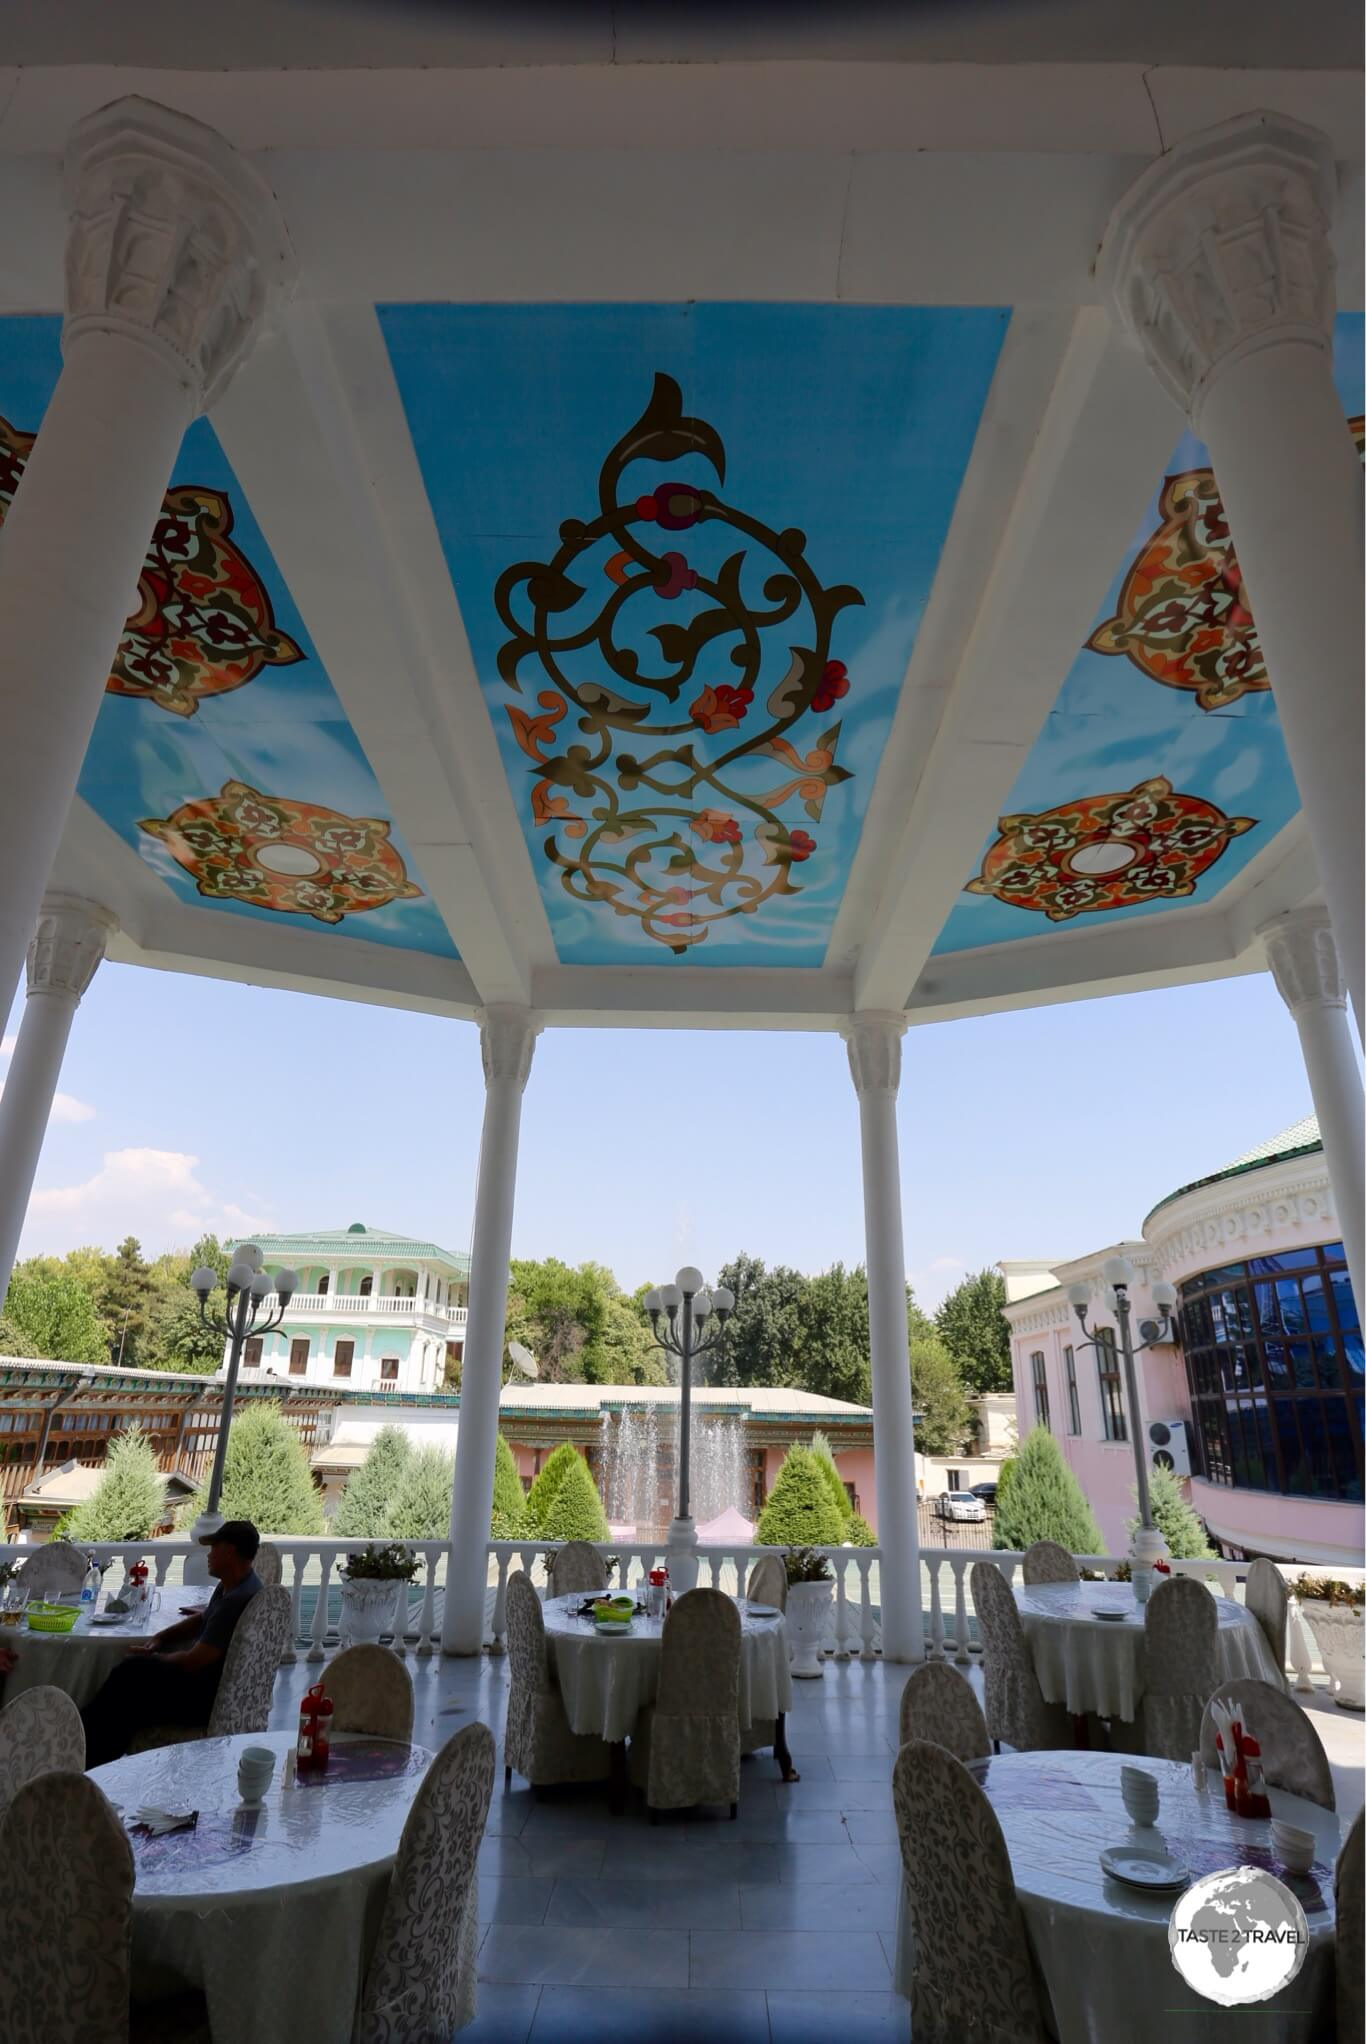 The Rohat tea-house in Dushanbe.